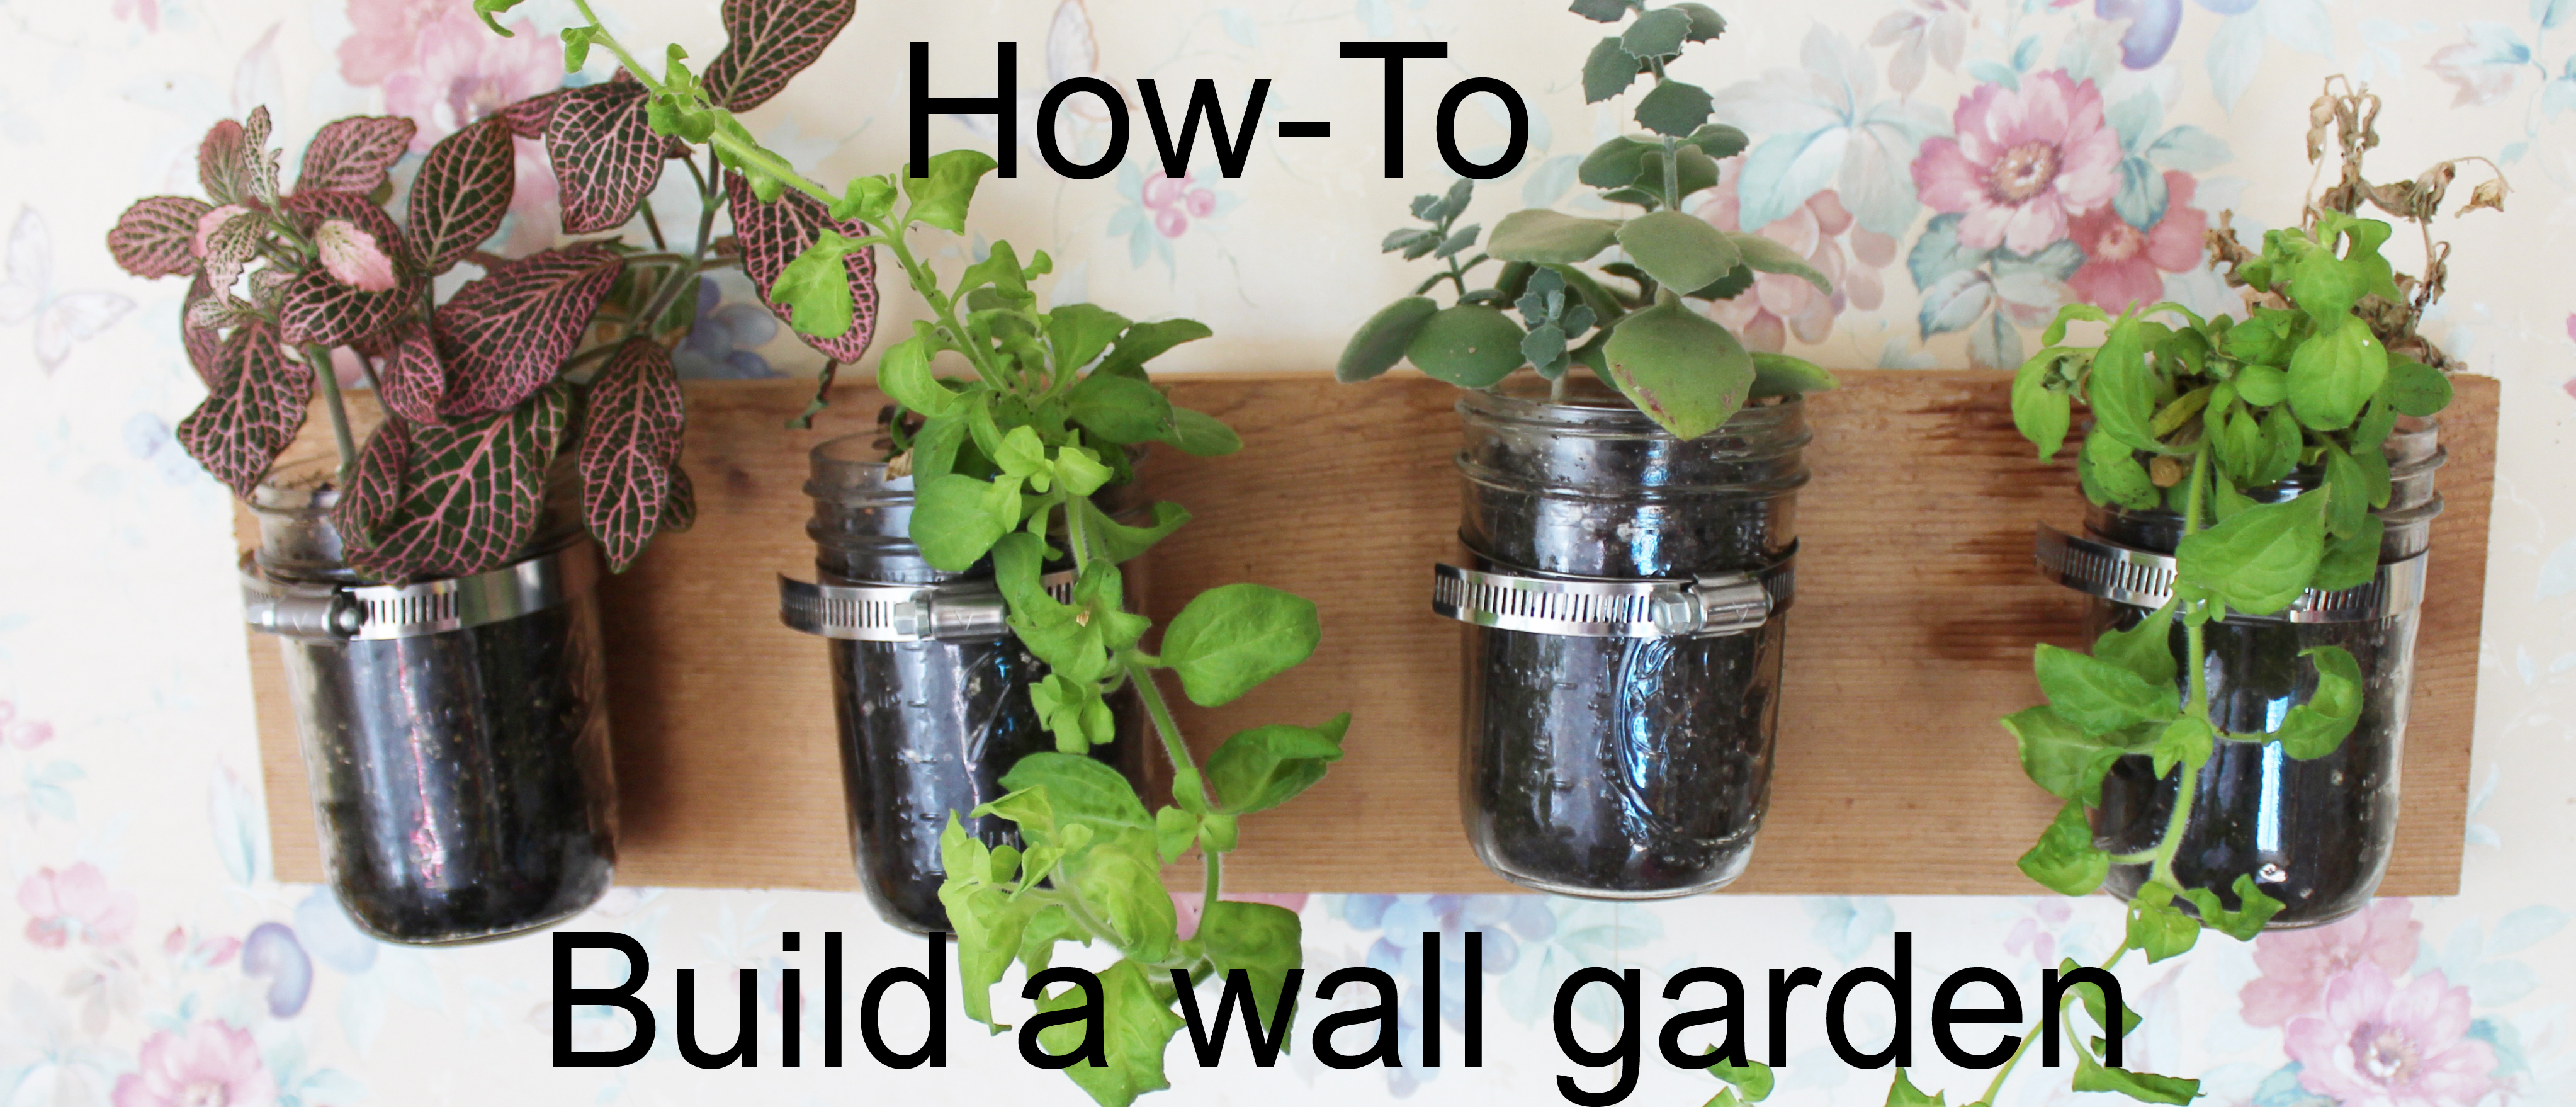 How To Build an Indoor Wall Garden Dads Dealscom